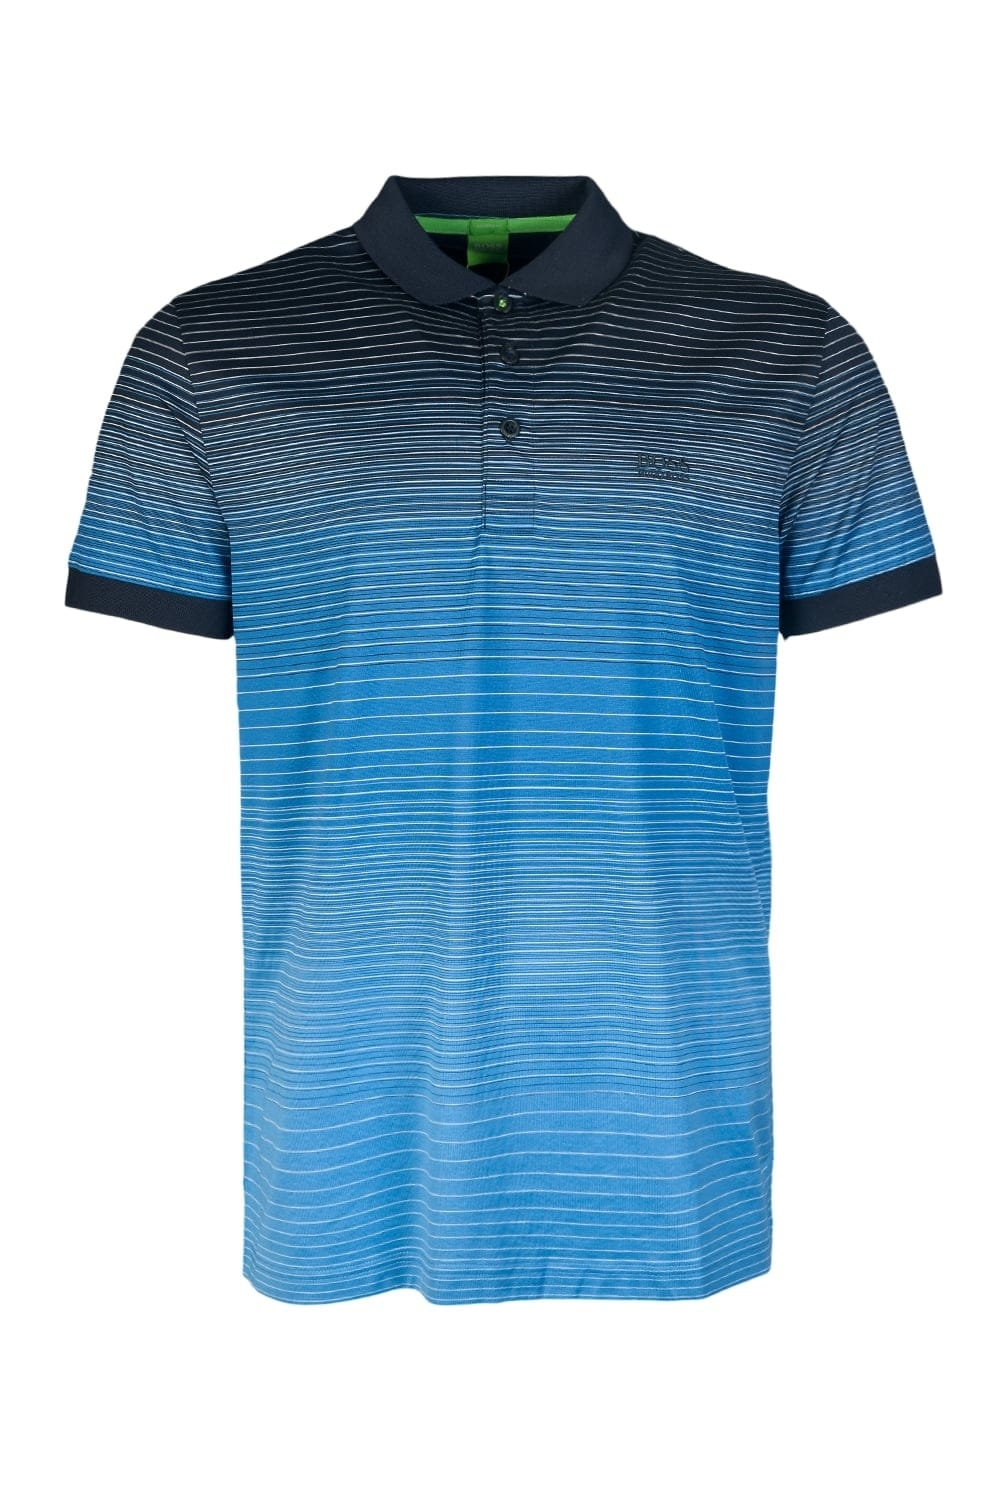 Hugo boss stripe polo t shirt paddy 3 50301944 for Hugo boss green polo shirt sale